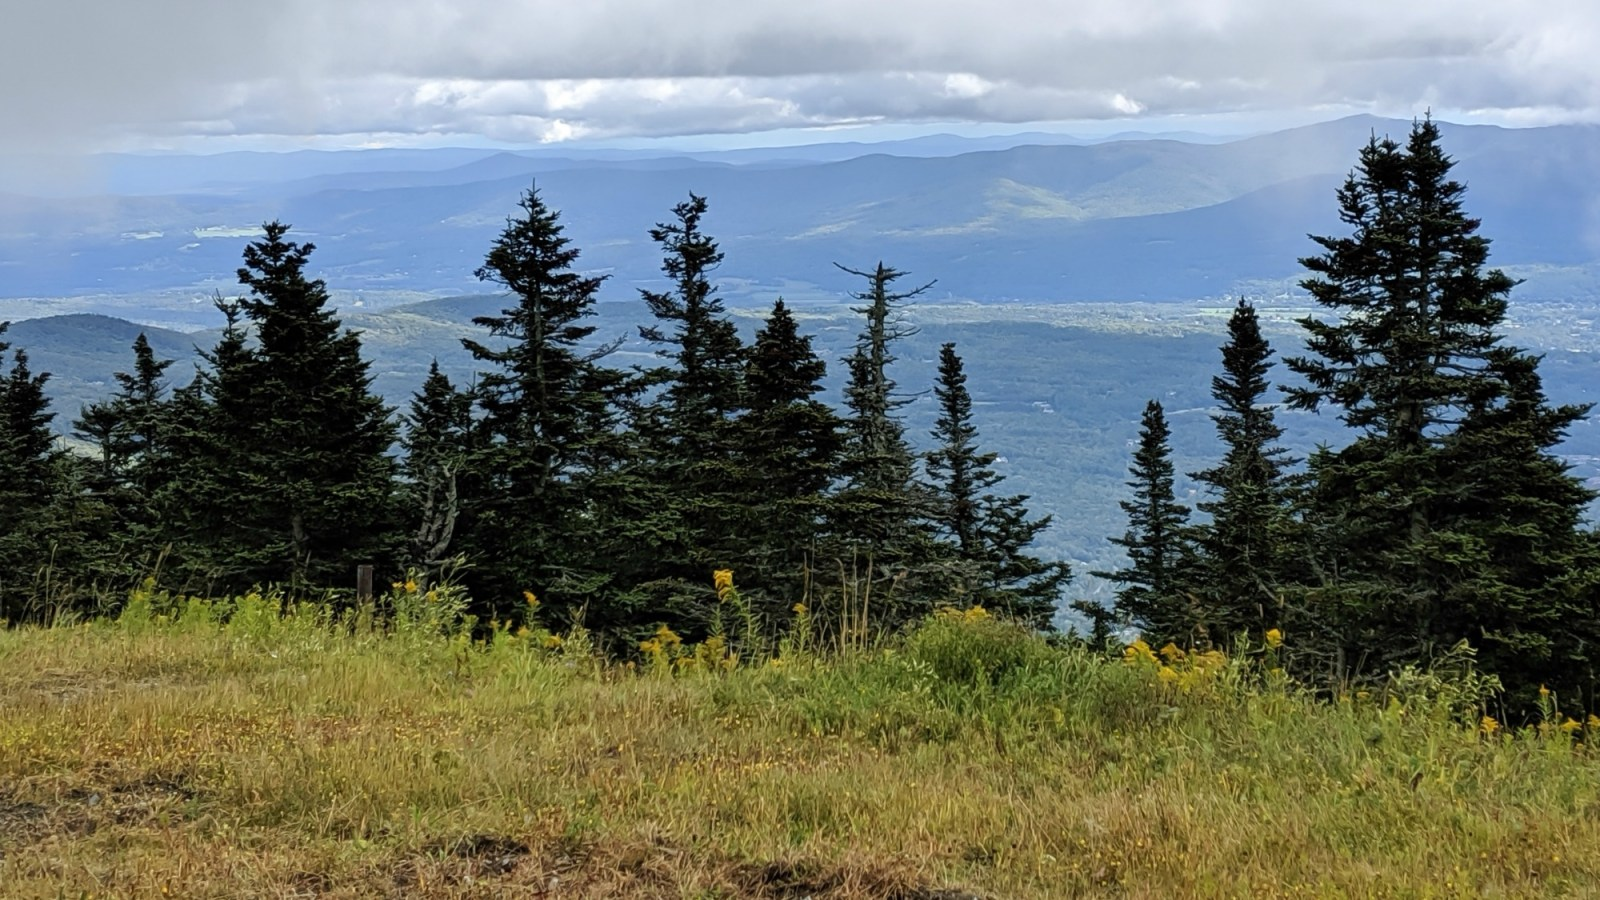 11 Ways to Fill Your Days During a Weekend in Vermont   Craft beer, farmers market, bed and breakfast hiking in the mountains, von trapp family lodge, shopping, history, etc. #vermont #newengland